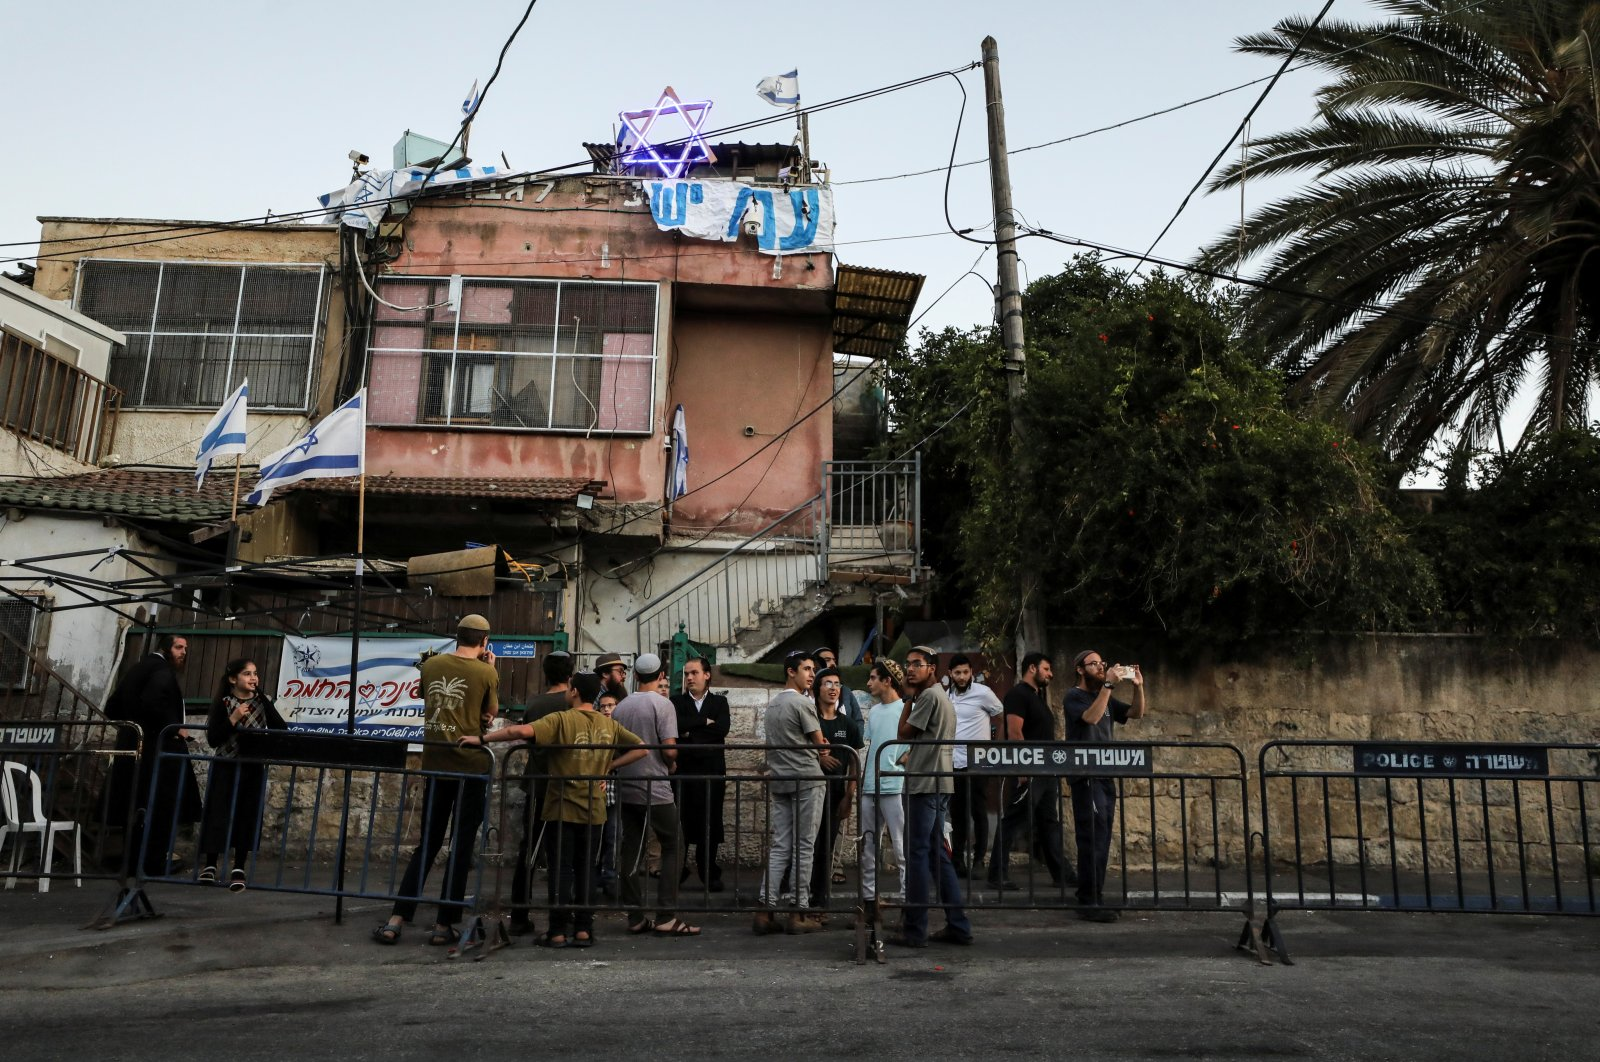 Orthodox Jewish youth stand next to an Israeli police barricade in Sheikh Jarrah neighborhood, where Palestinian families face possible eviction after an Israeli court accepted Jewish settler land claims, in East Jerusalem, occupied Palestine, June 6, 2021. (Reuters Photo)